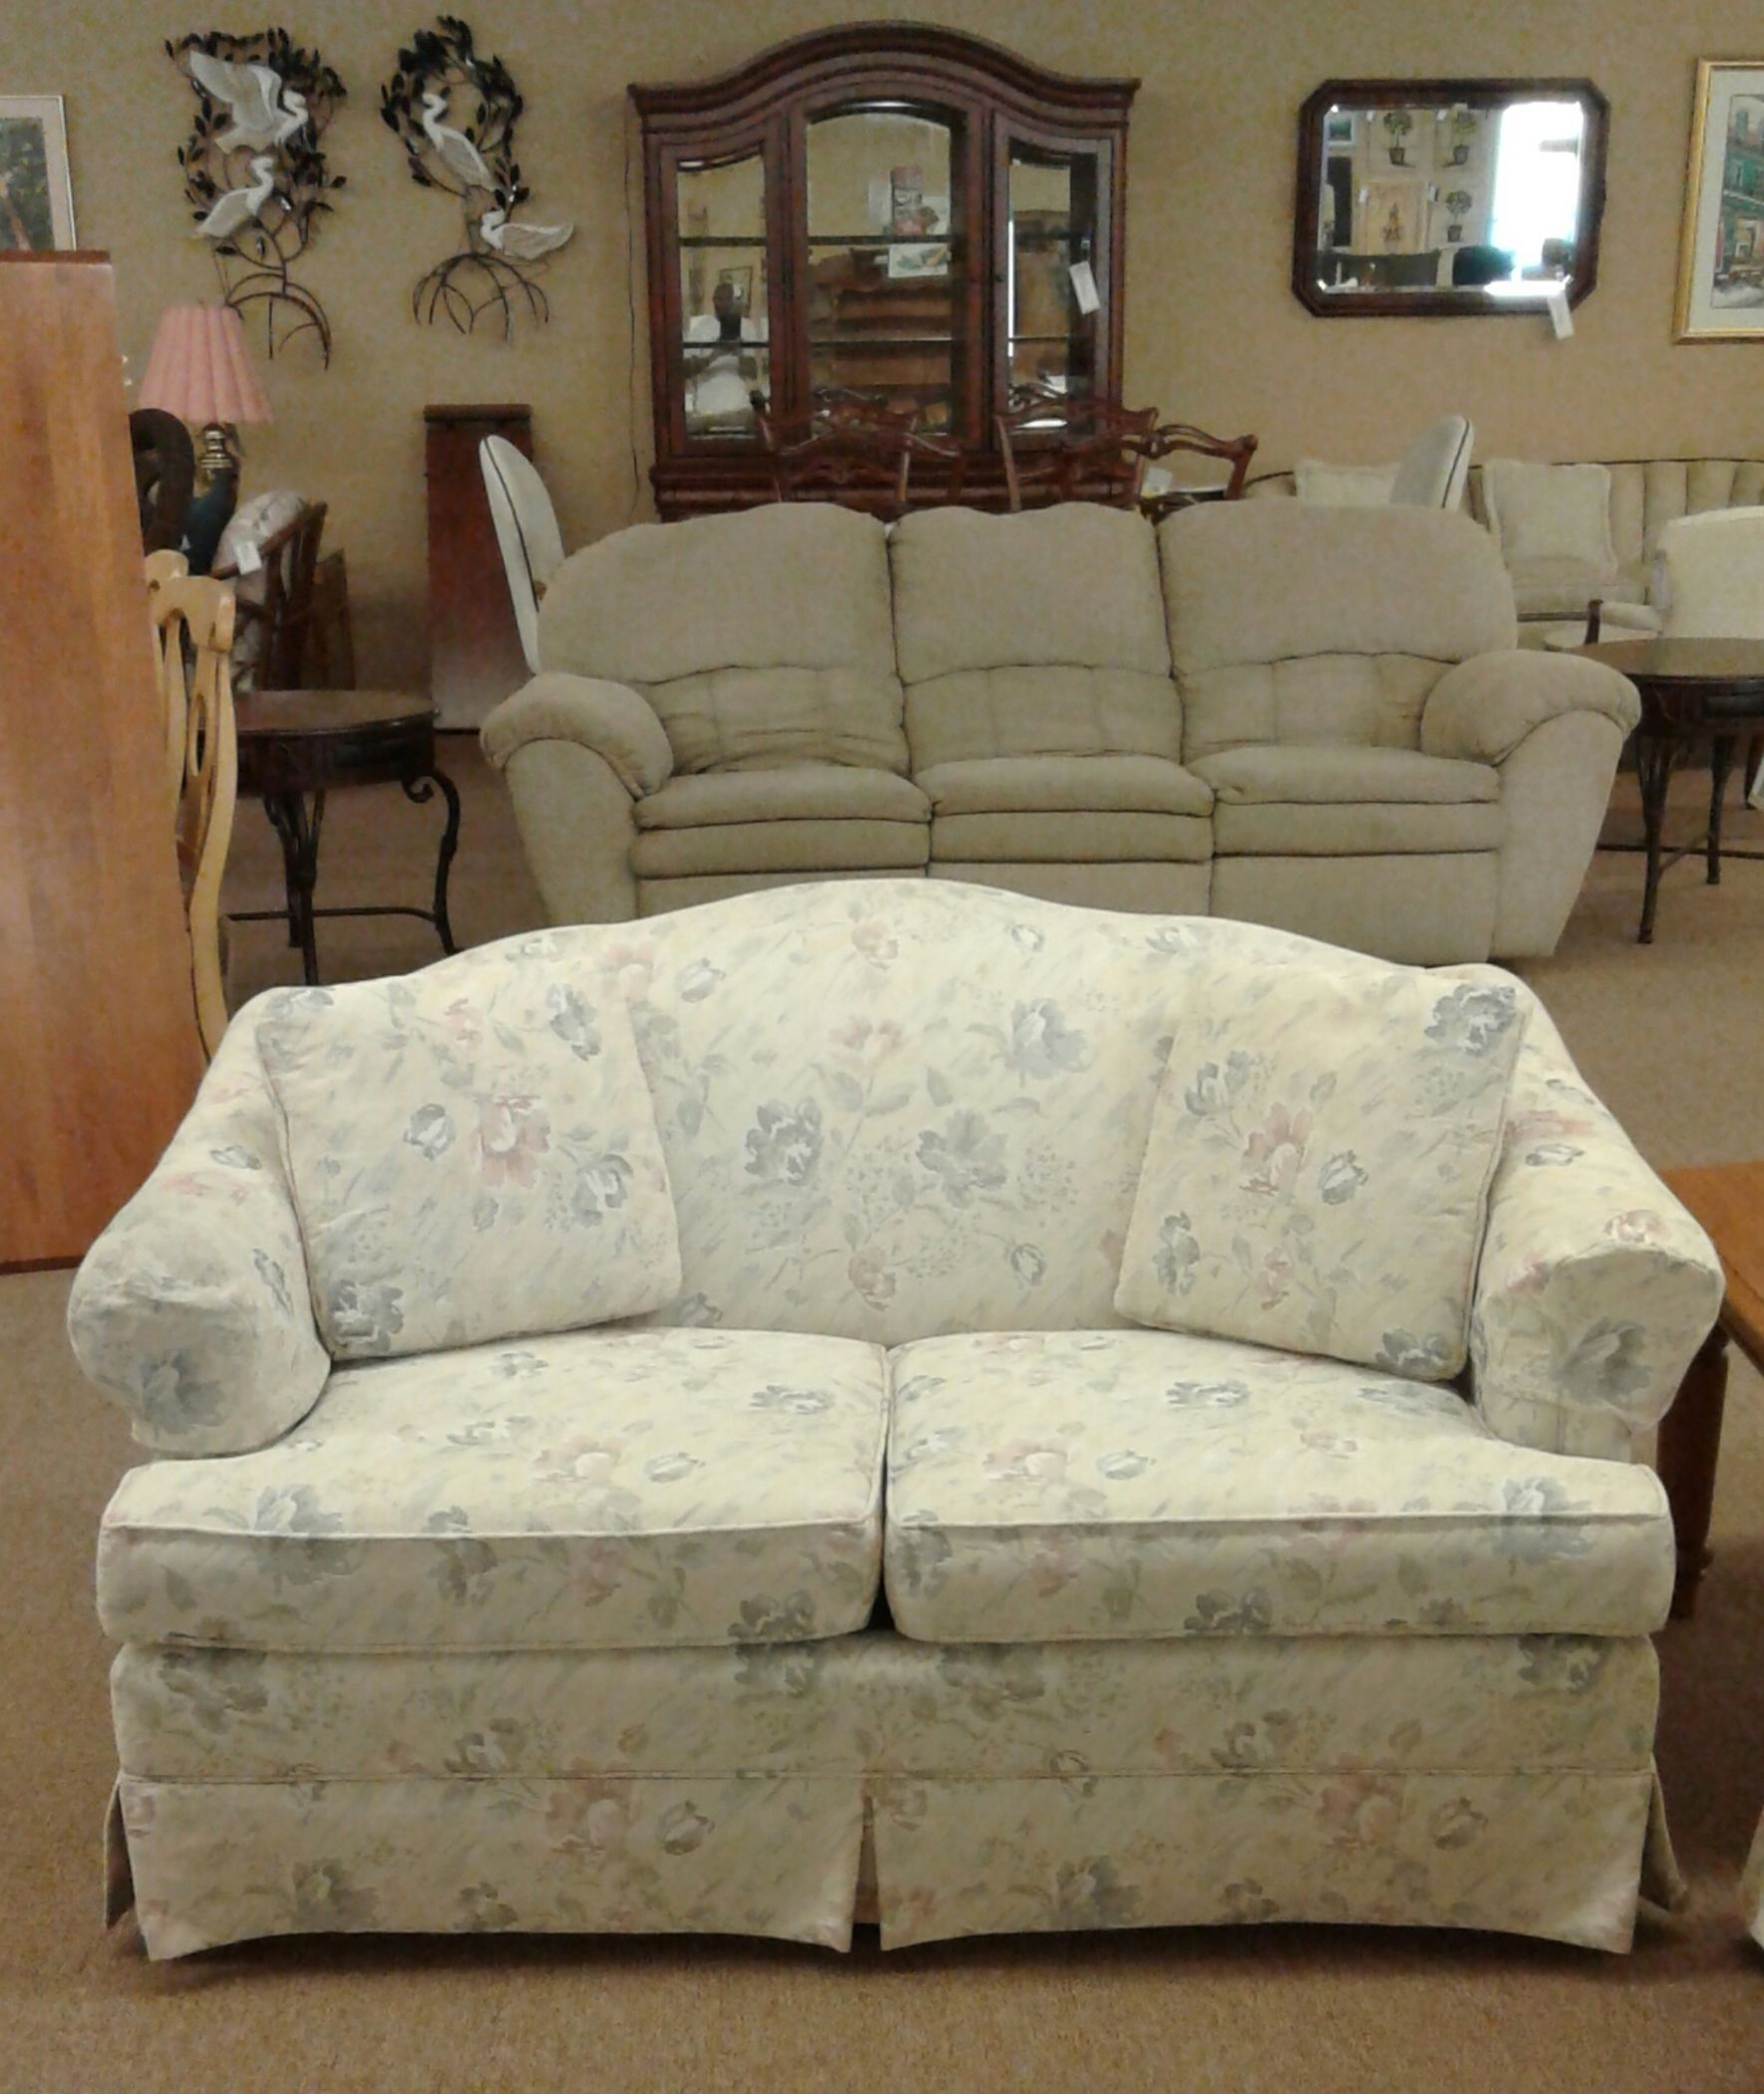 hickory chair leather couch covers online camel back sofa & loveseat | delmarva furniture consignment